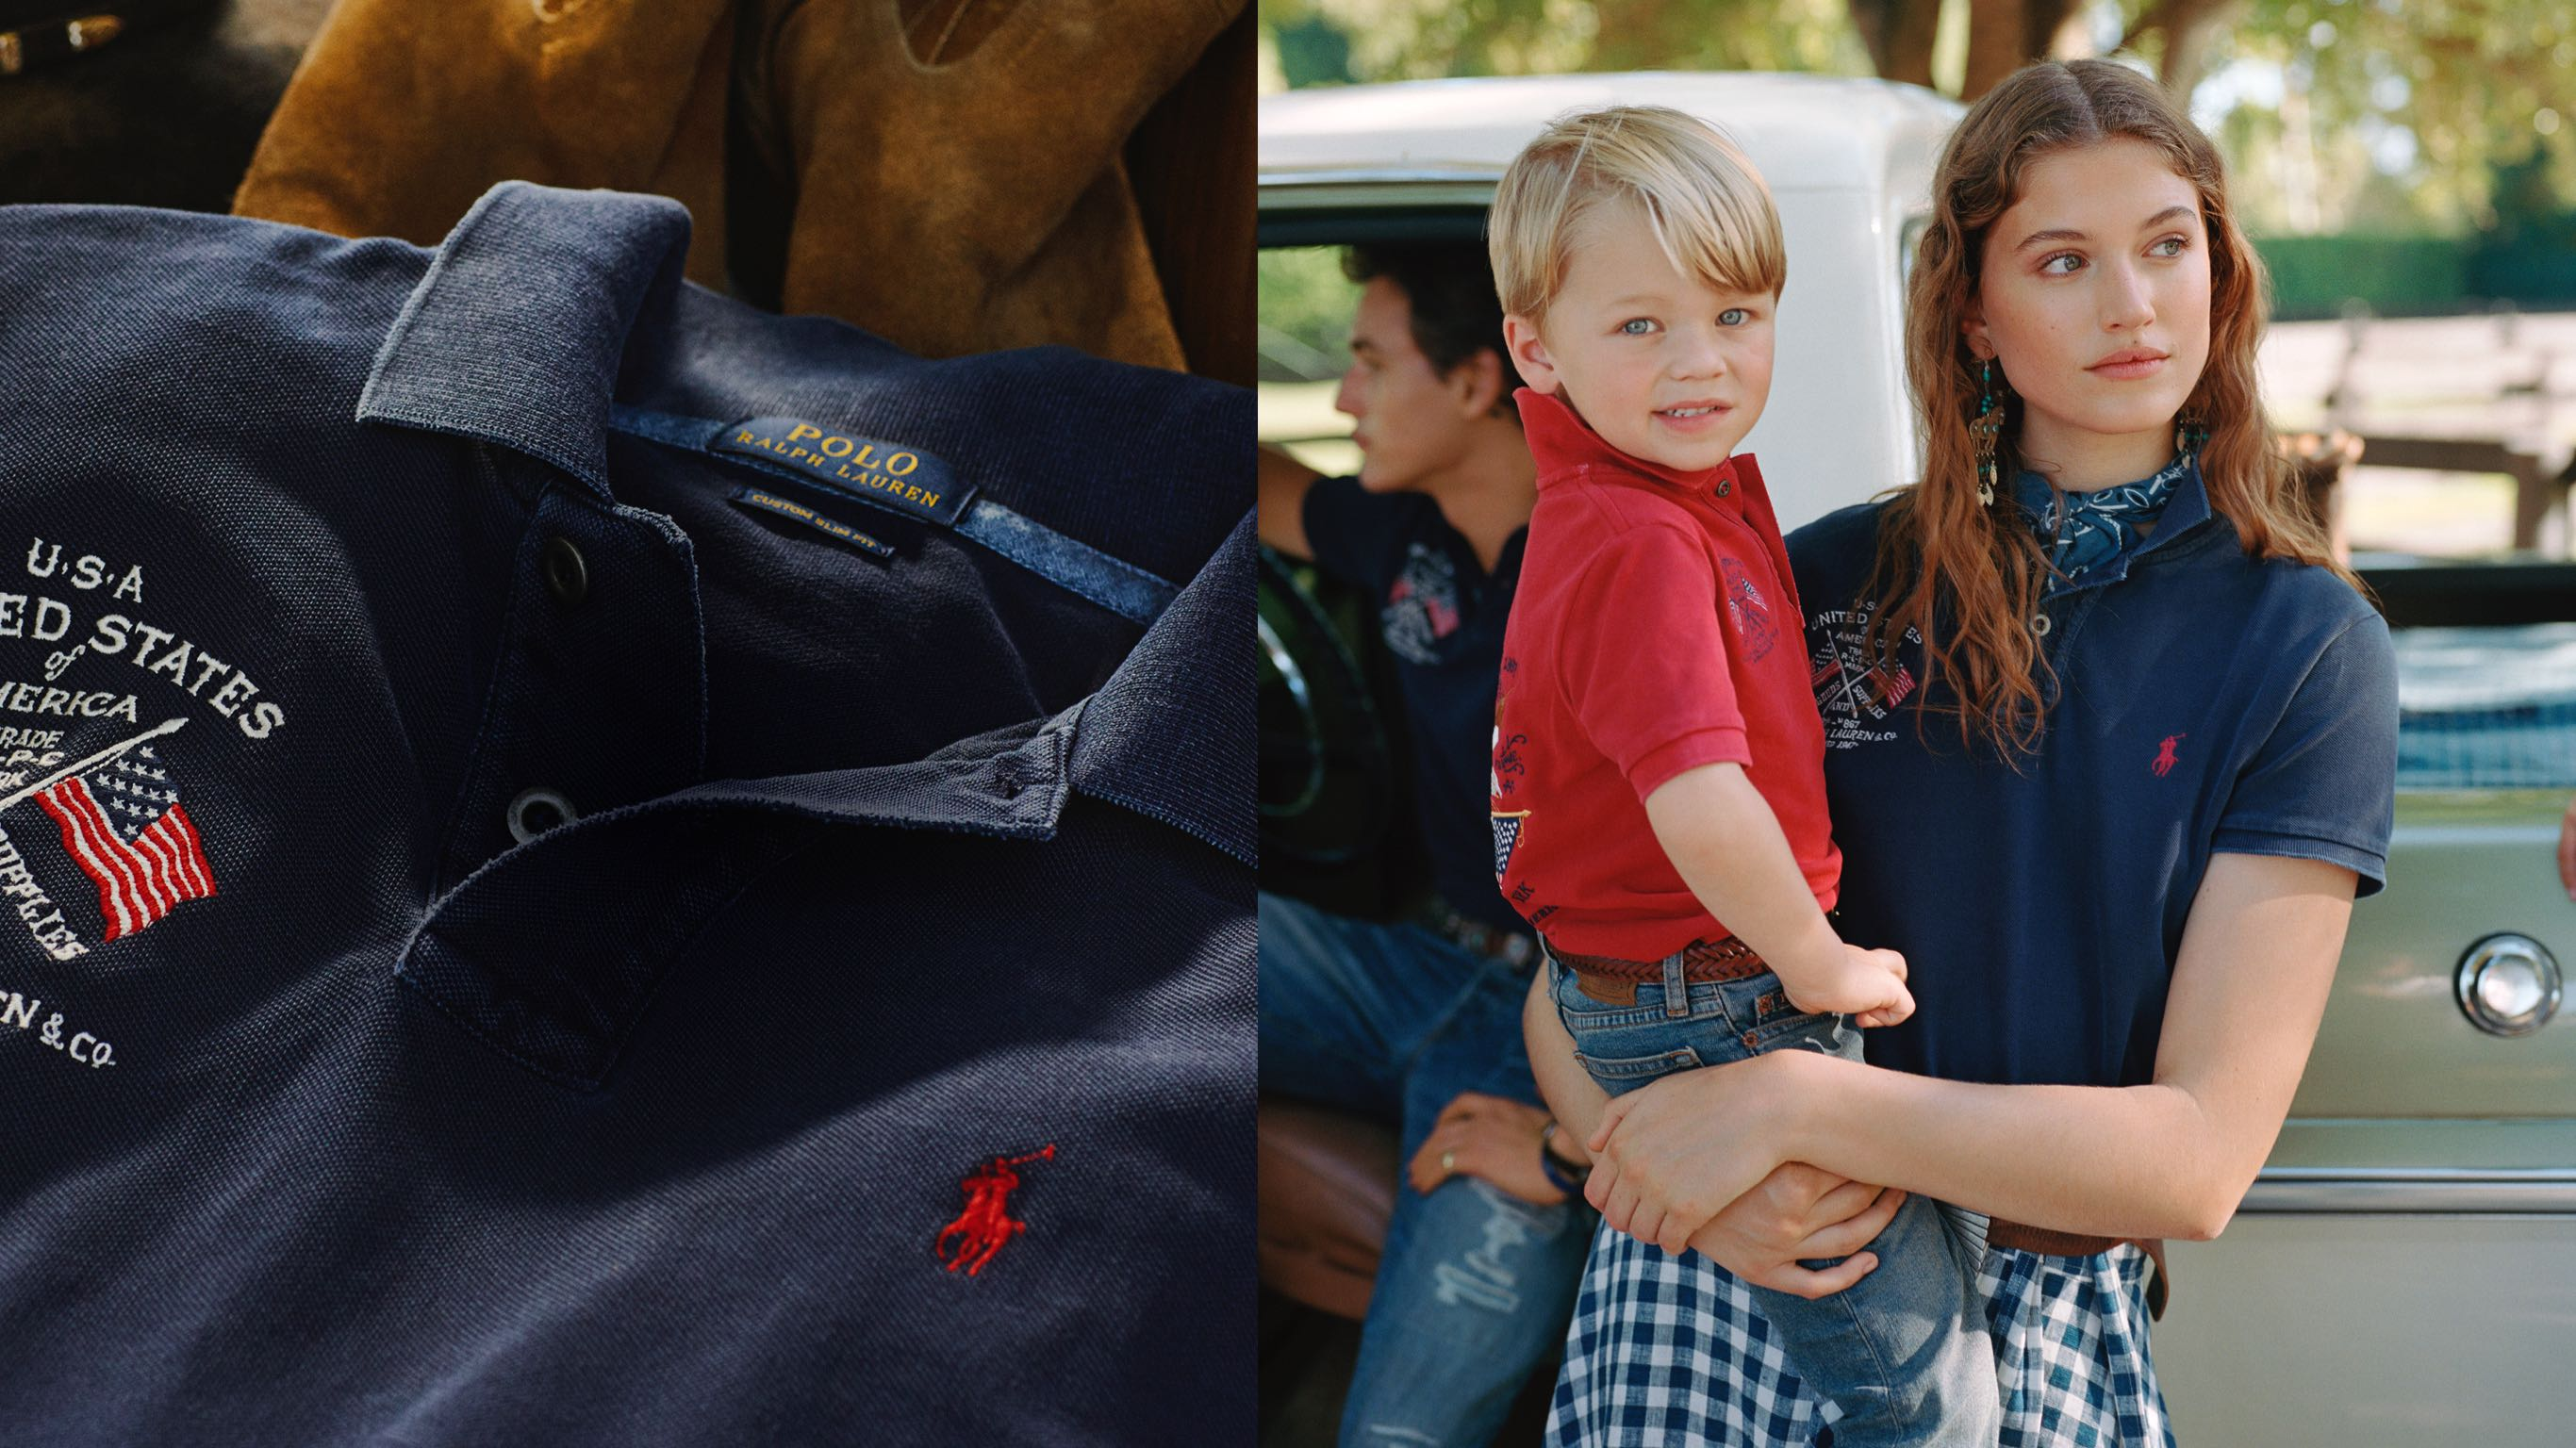 Navy Polo shirt with Americana embroidery; Woman in navy Polo carrying boy in red Polo